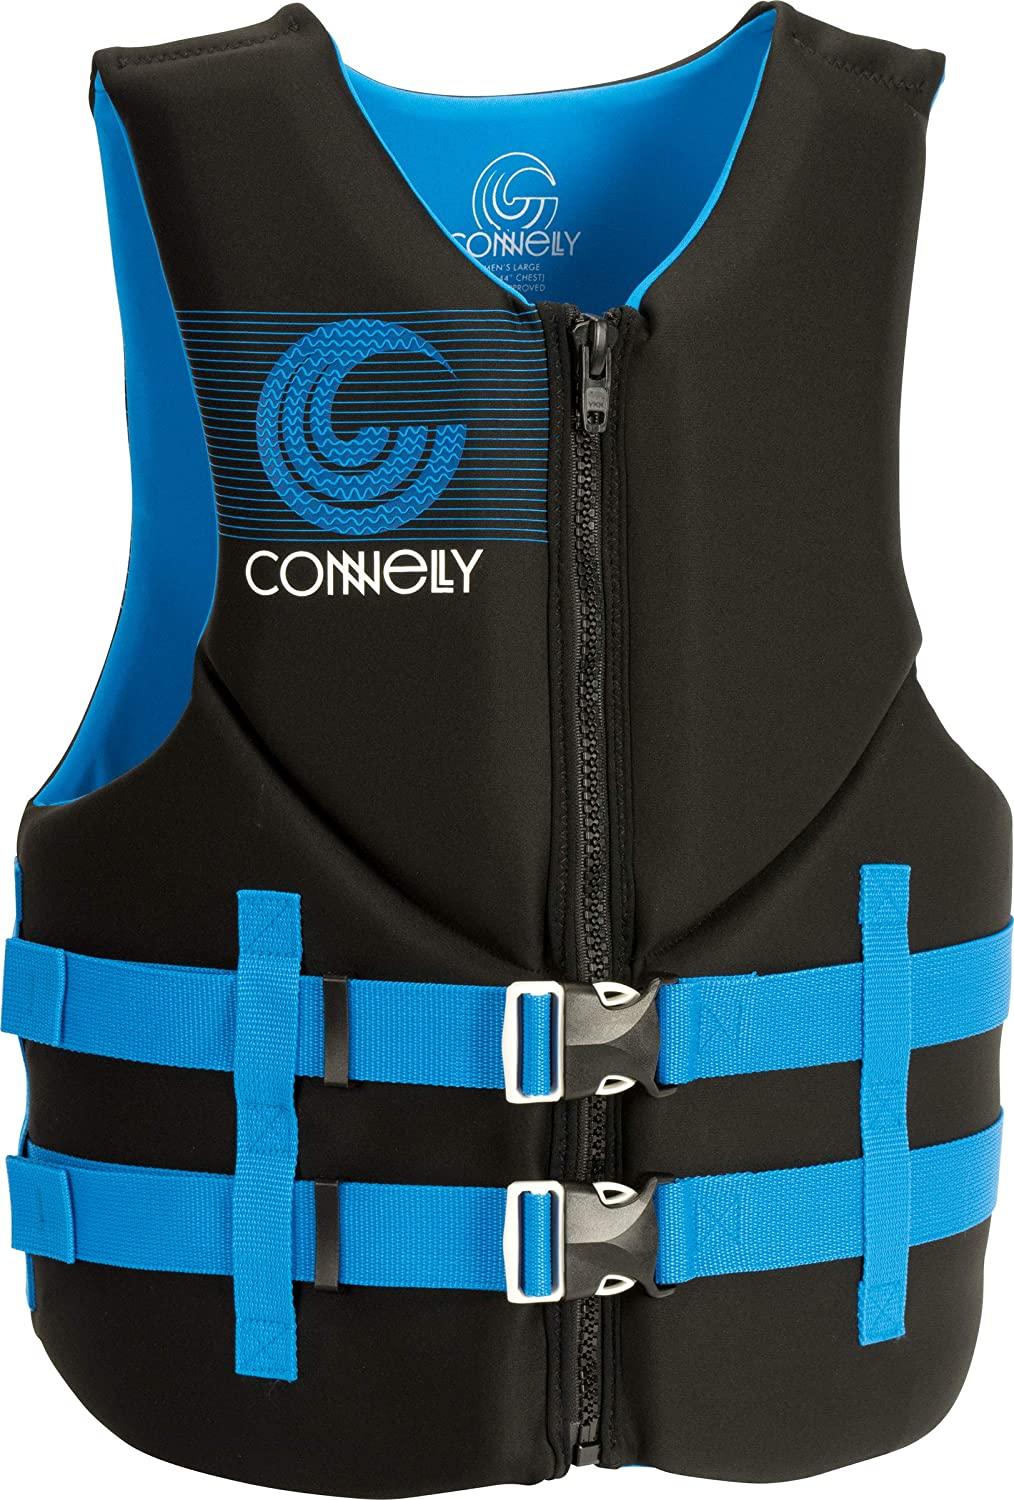 Connelly Promo Neo CGA Wakeboard Vest Mens 3X-Large  B079DD3GCH